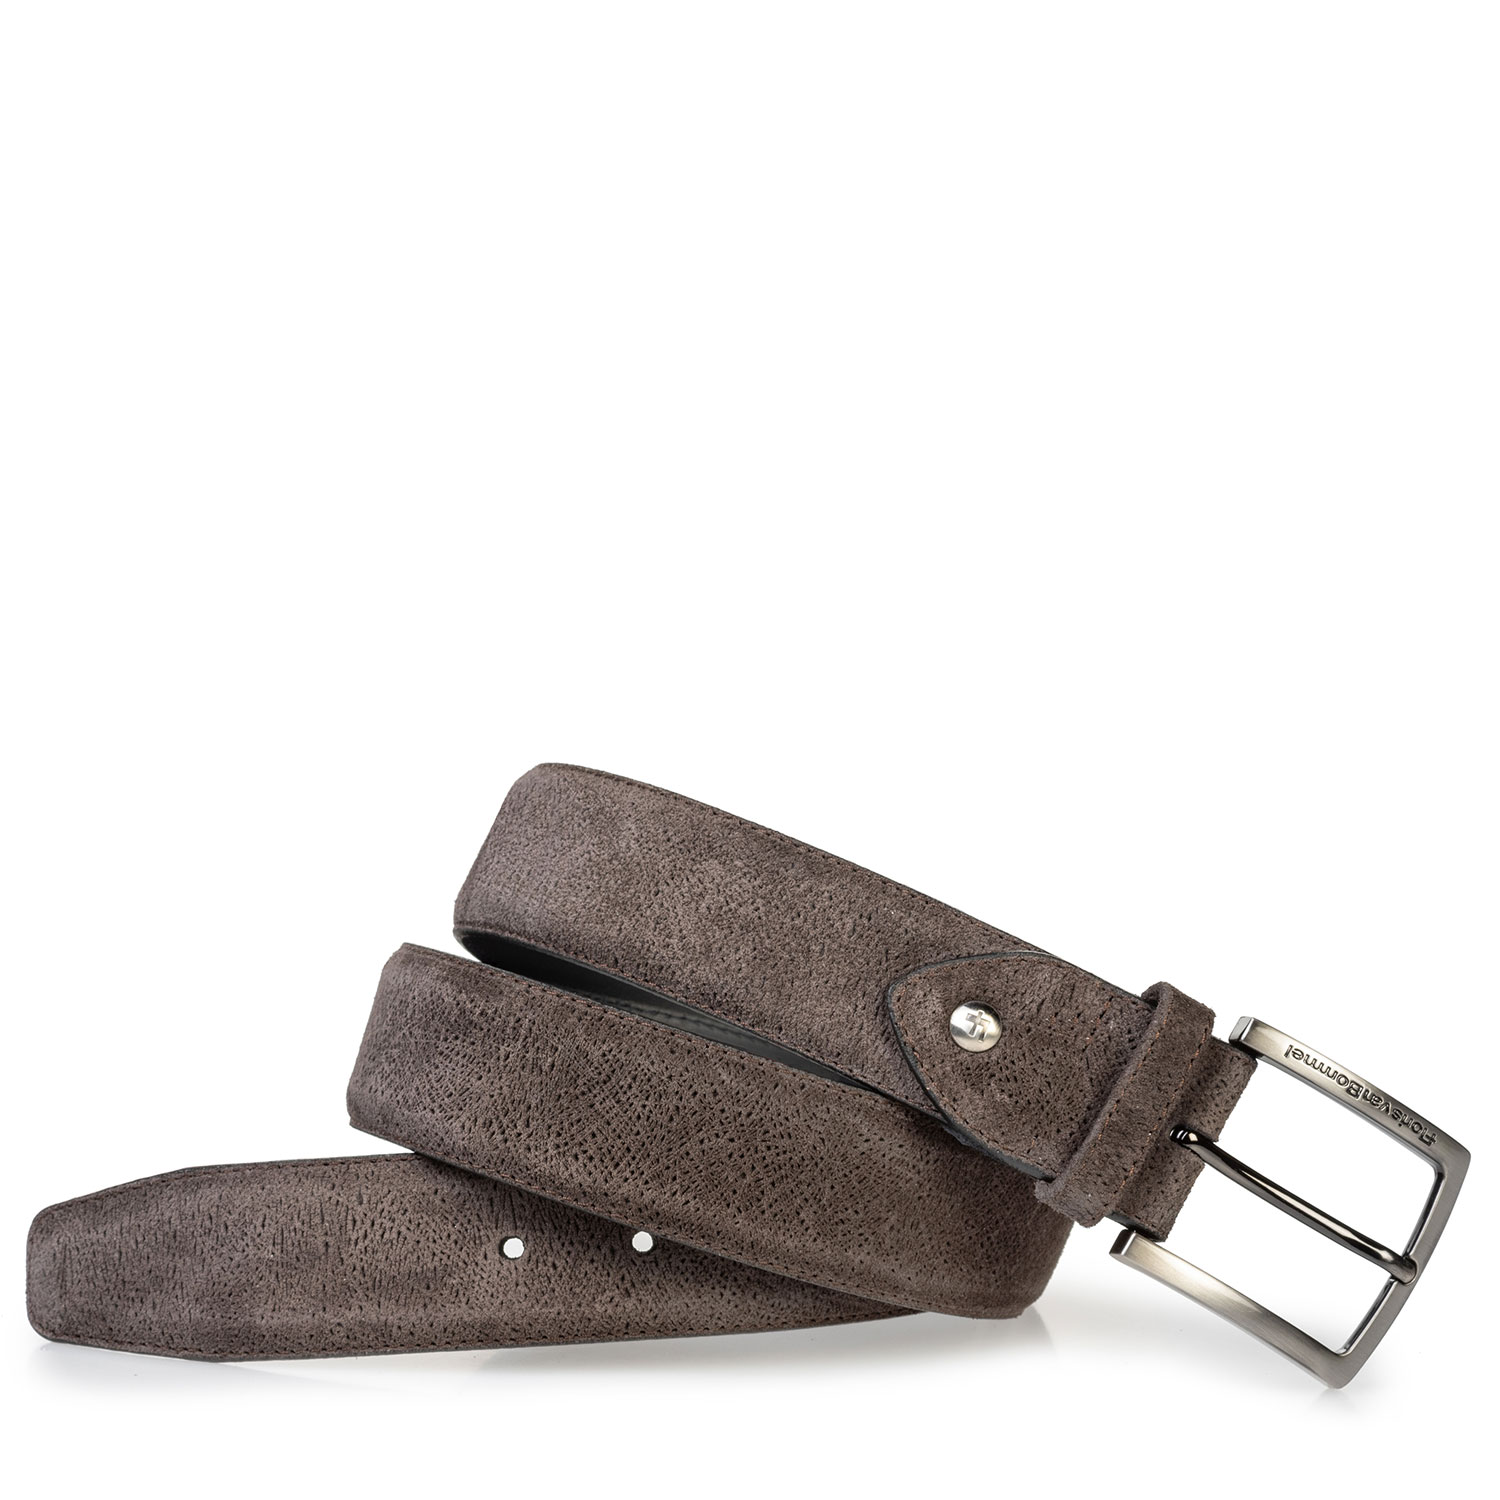 75202/68 - Suede leather belt dark brown with print